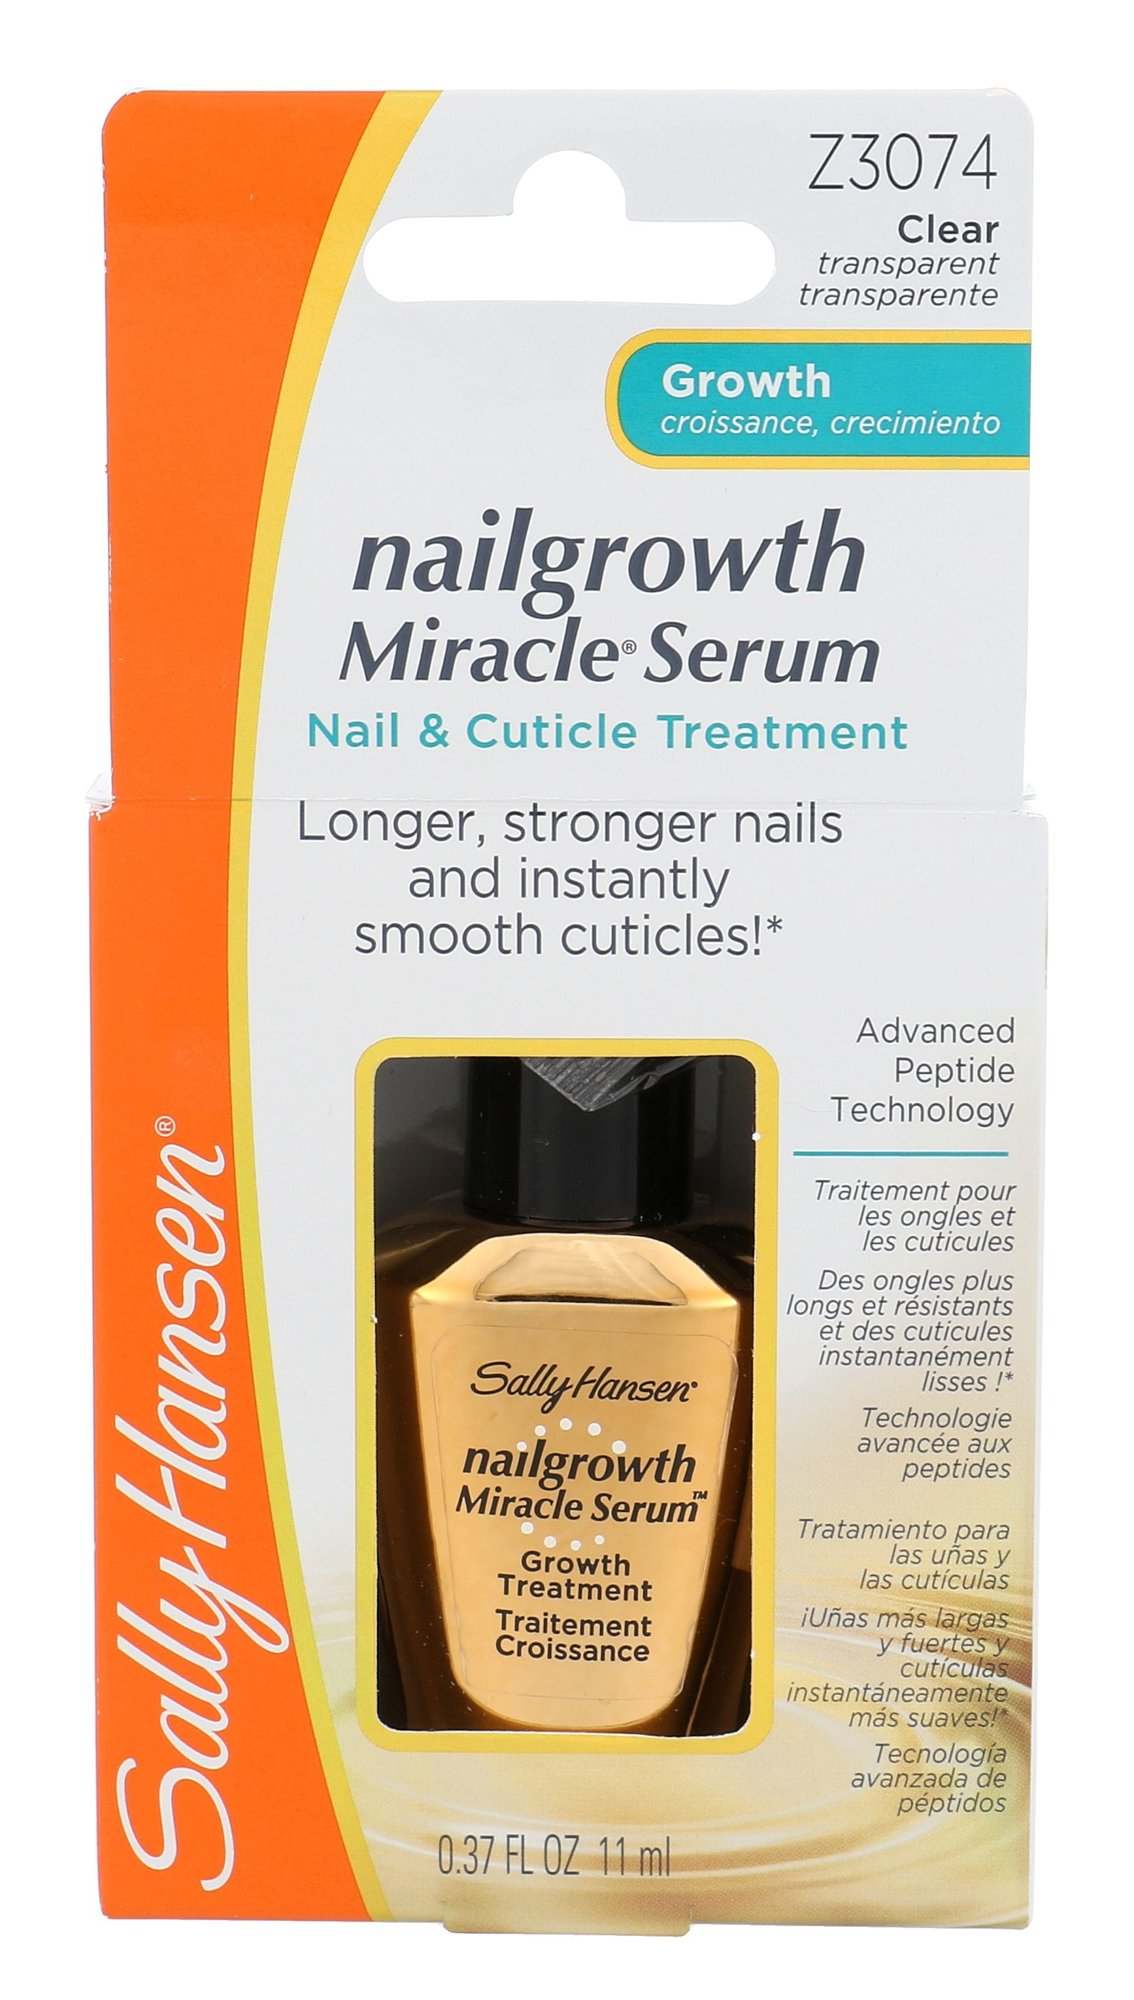 Sally Hansen Nailgrowth Miracle Serum Cosmetic 11ml Clear